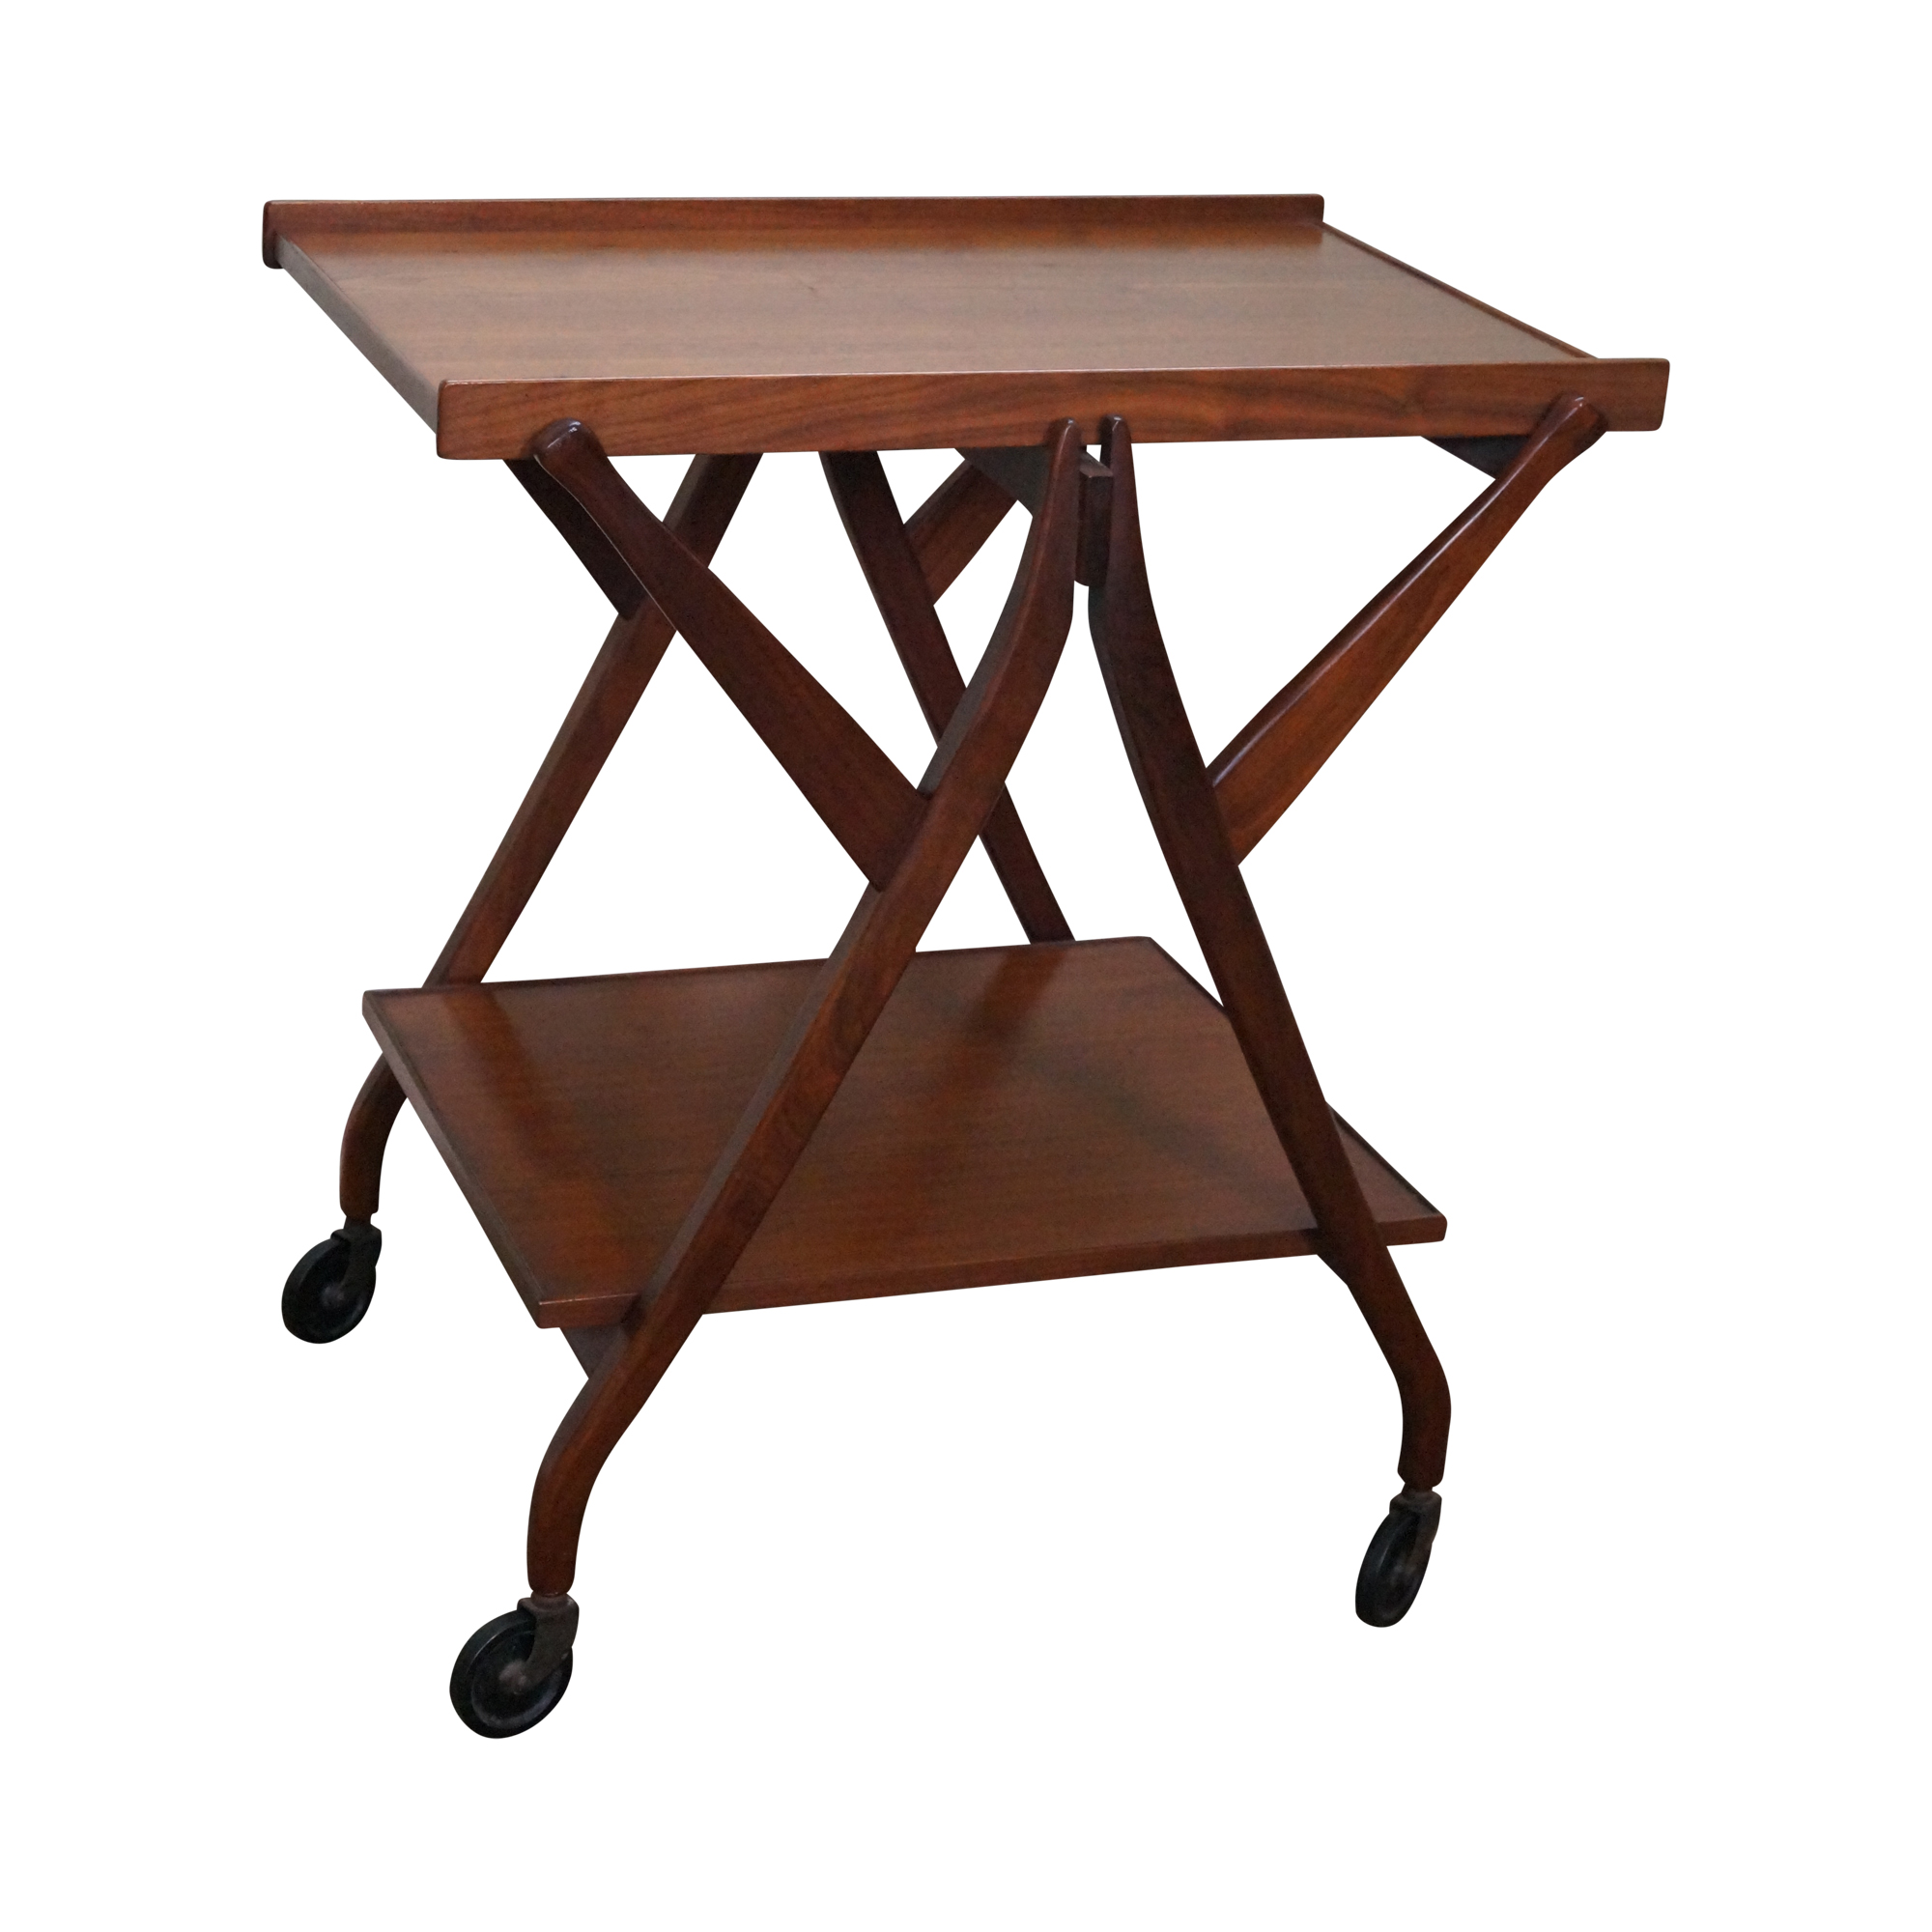 kipp stewart for drexel midcentury server bar cart chairish image of kipp stewart for drexel midcentury server bar cart